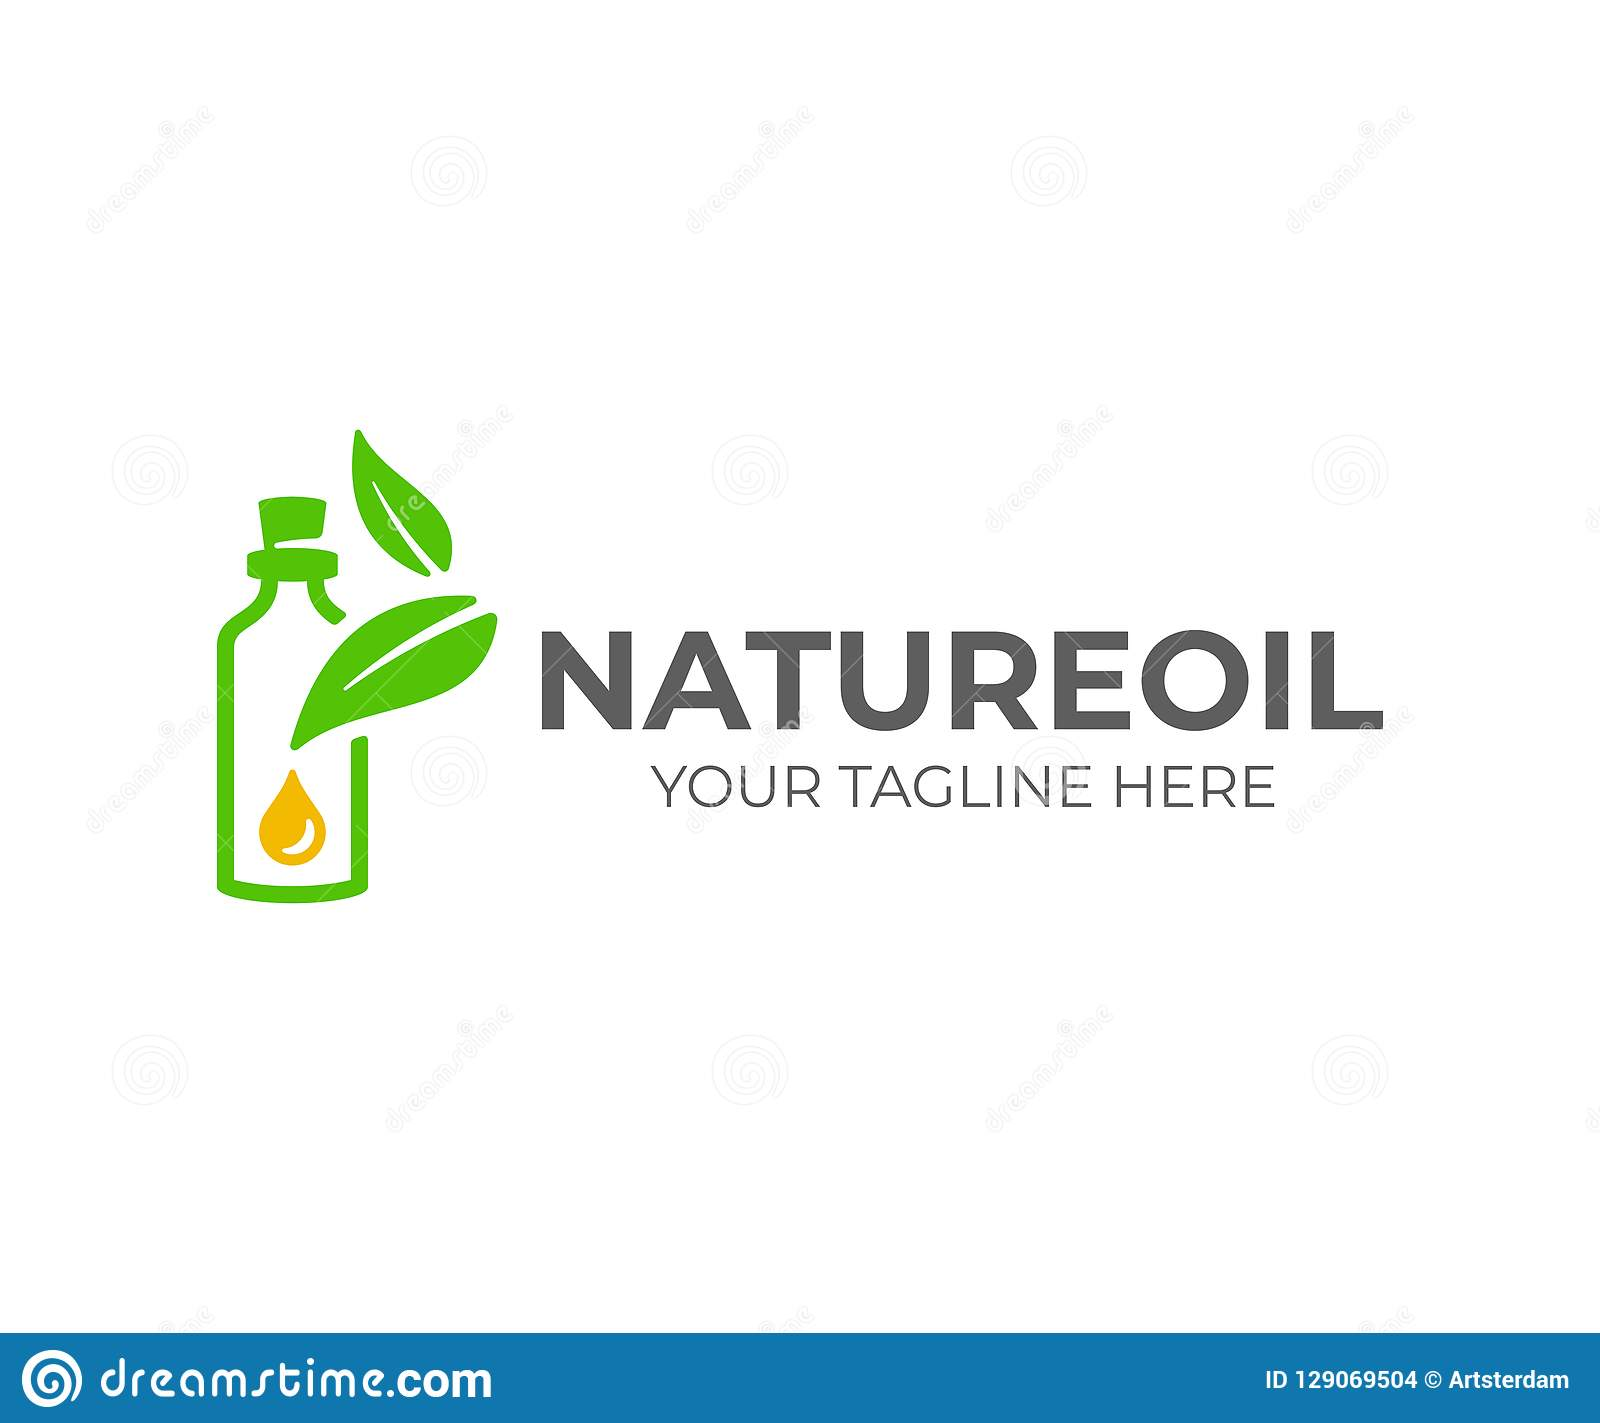 Essential oil logo design. Natural oil with fresh herbs vector design